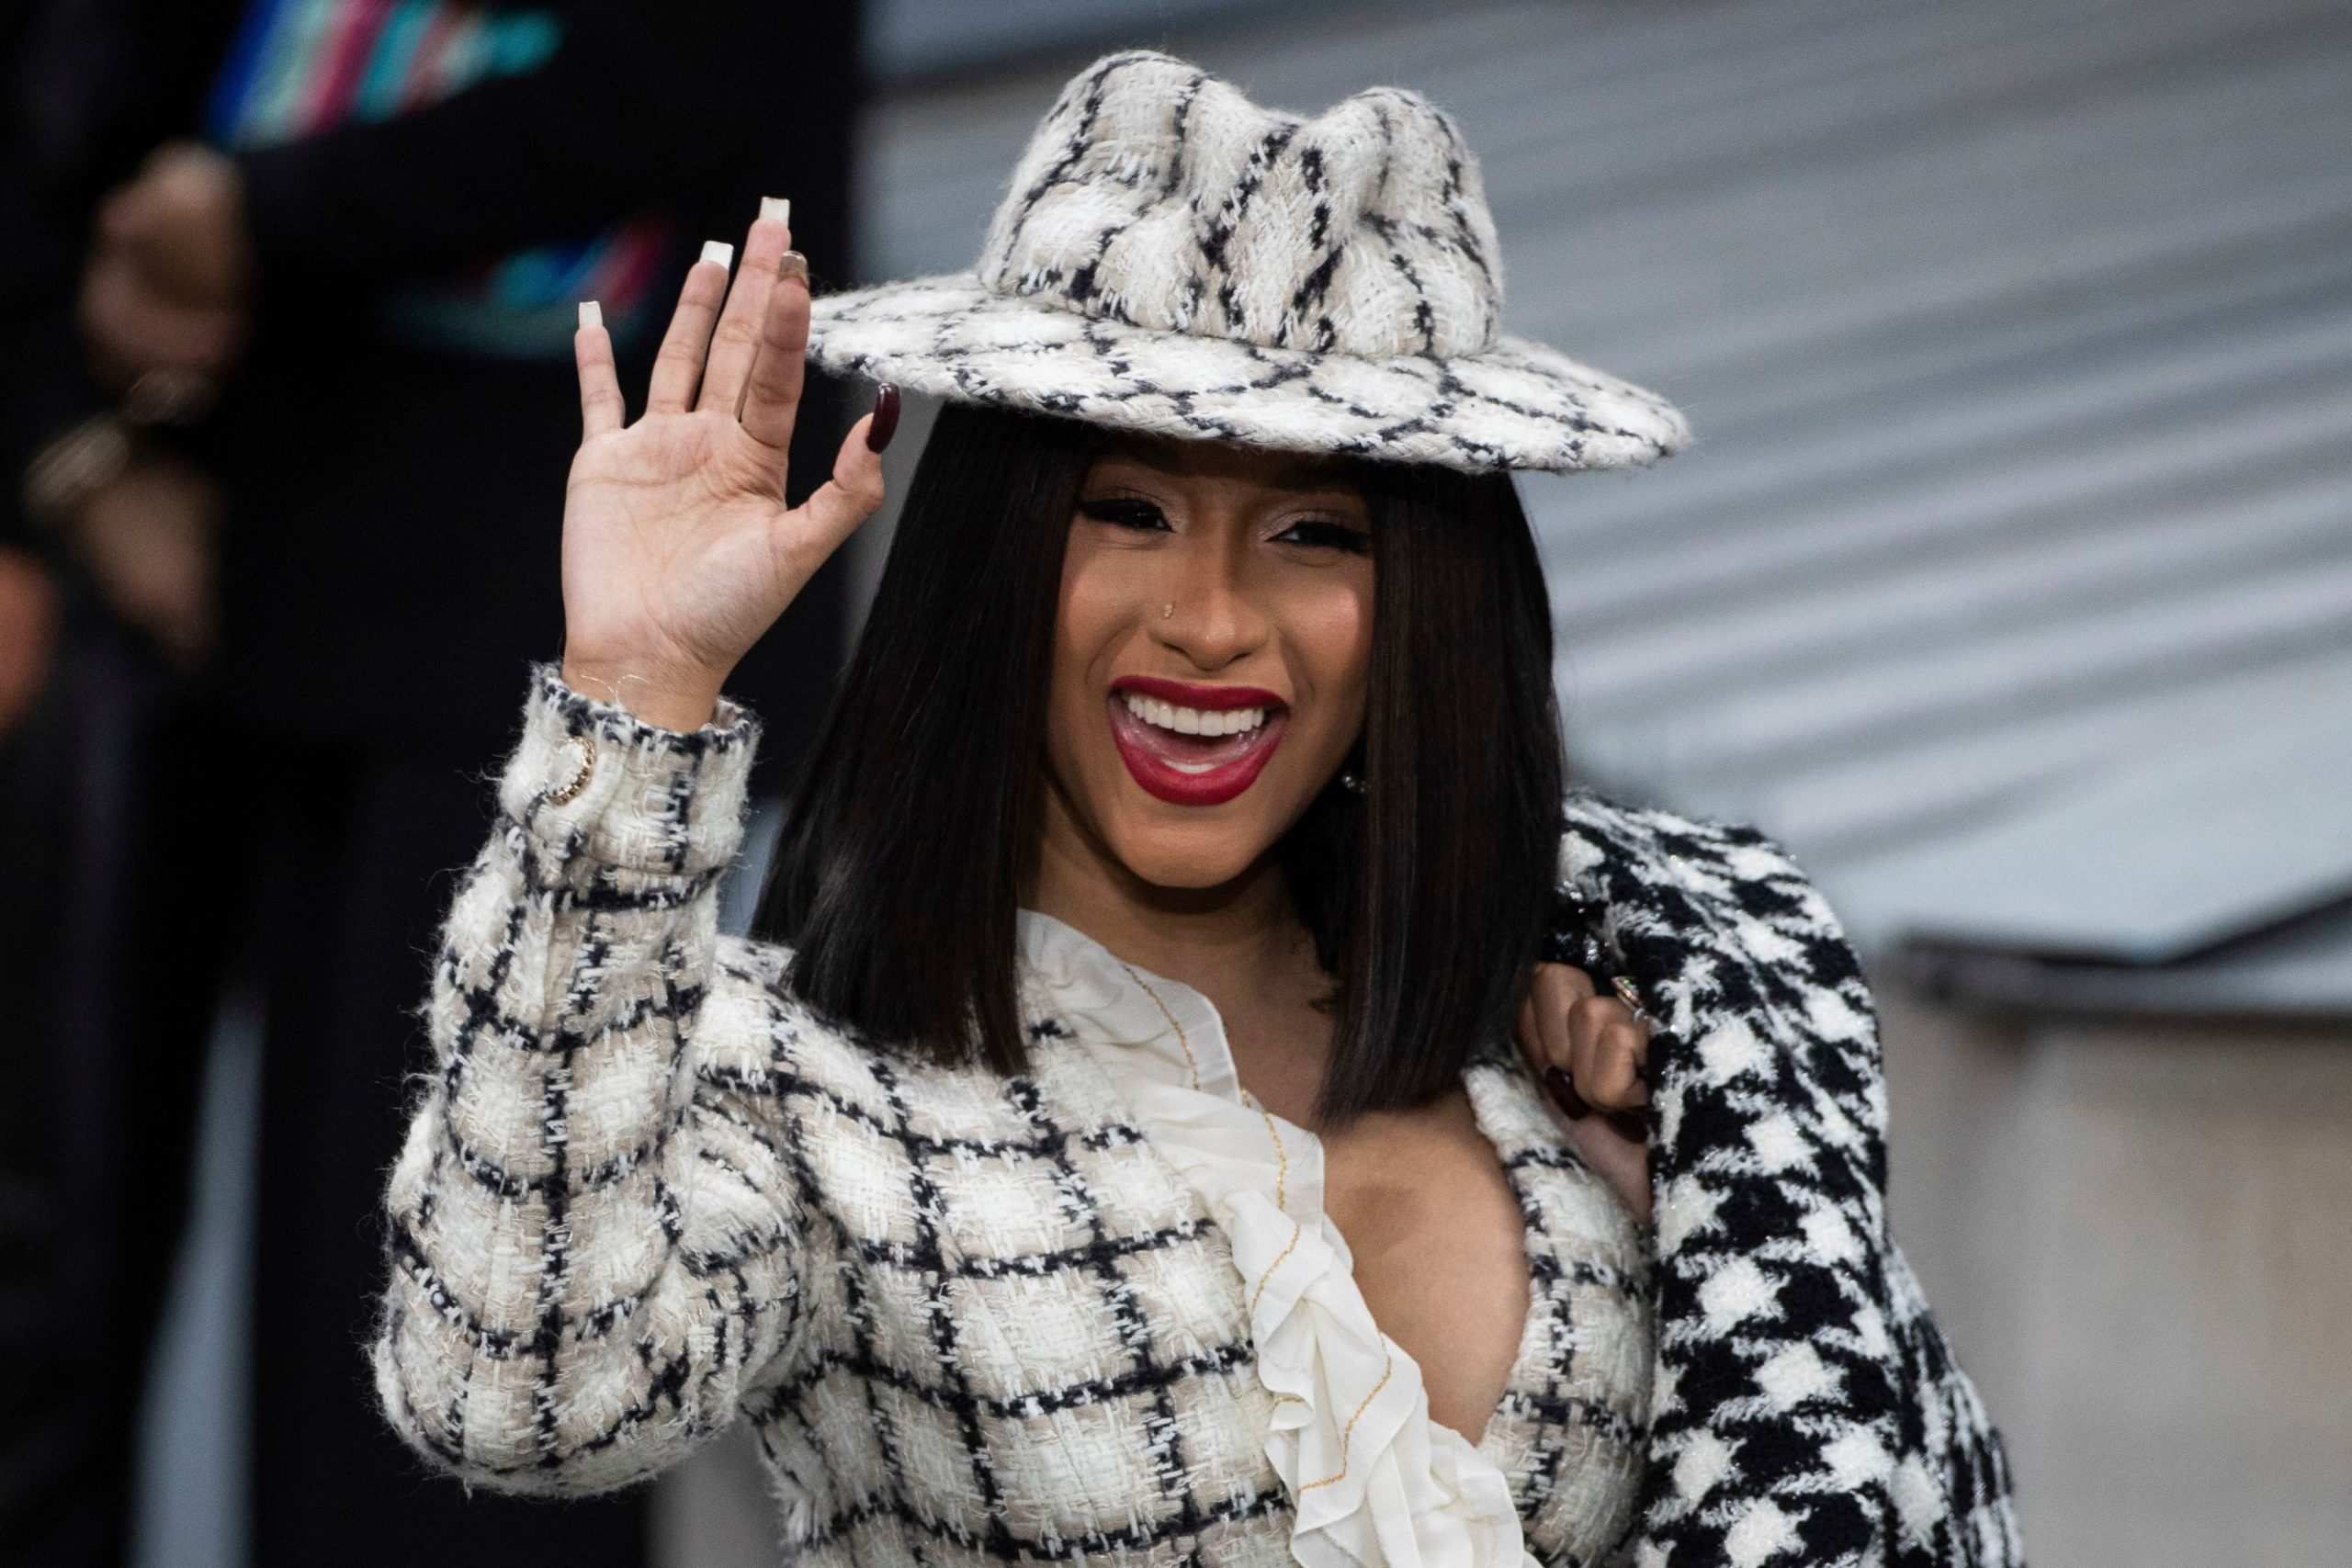 Cardi B Explains Why 'WAP' Wasn't Submitted for Grammy Consideration